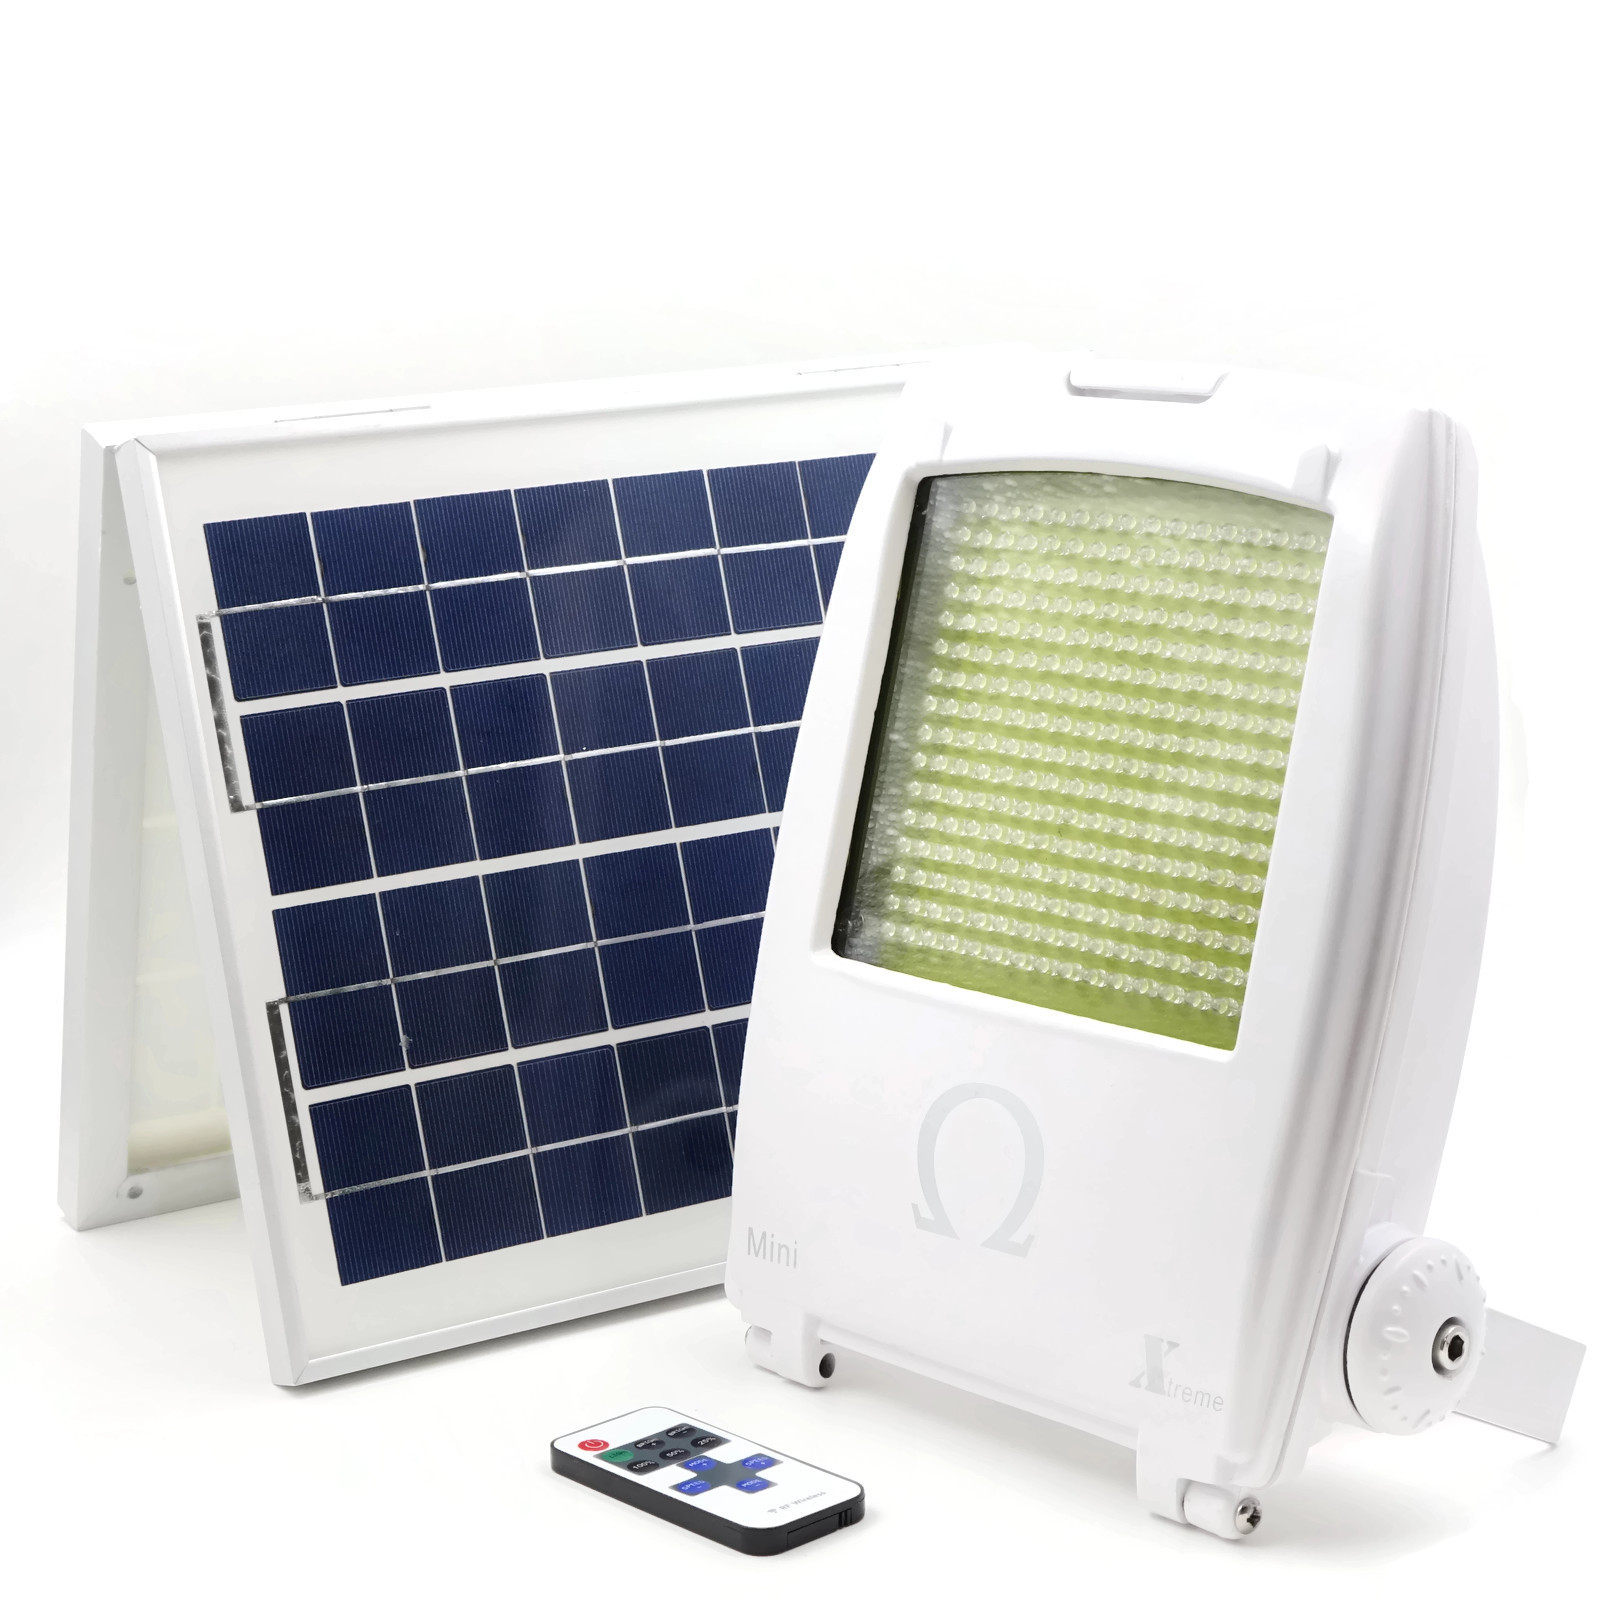 Most Powerful Solar Floodlight Compact Light Weight Durable Easy Quick Shed Electrical Wiring Youtube Installing The Mini Omega Xtreme Is More Affordable Than A Traditional Lighting In Some Area Watch Video For